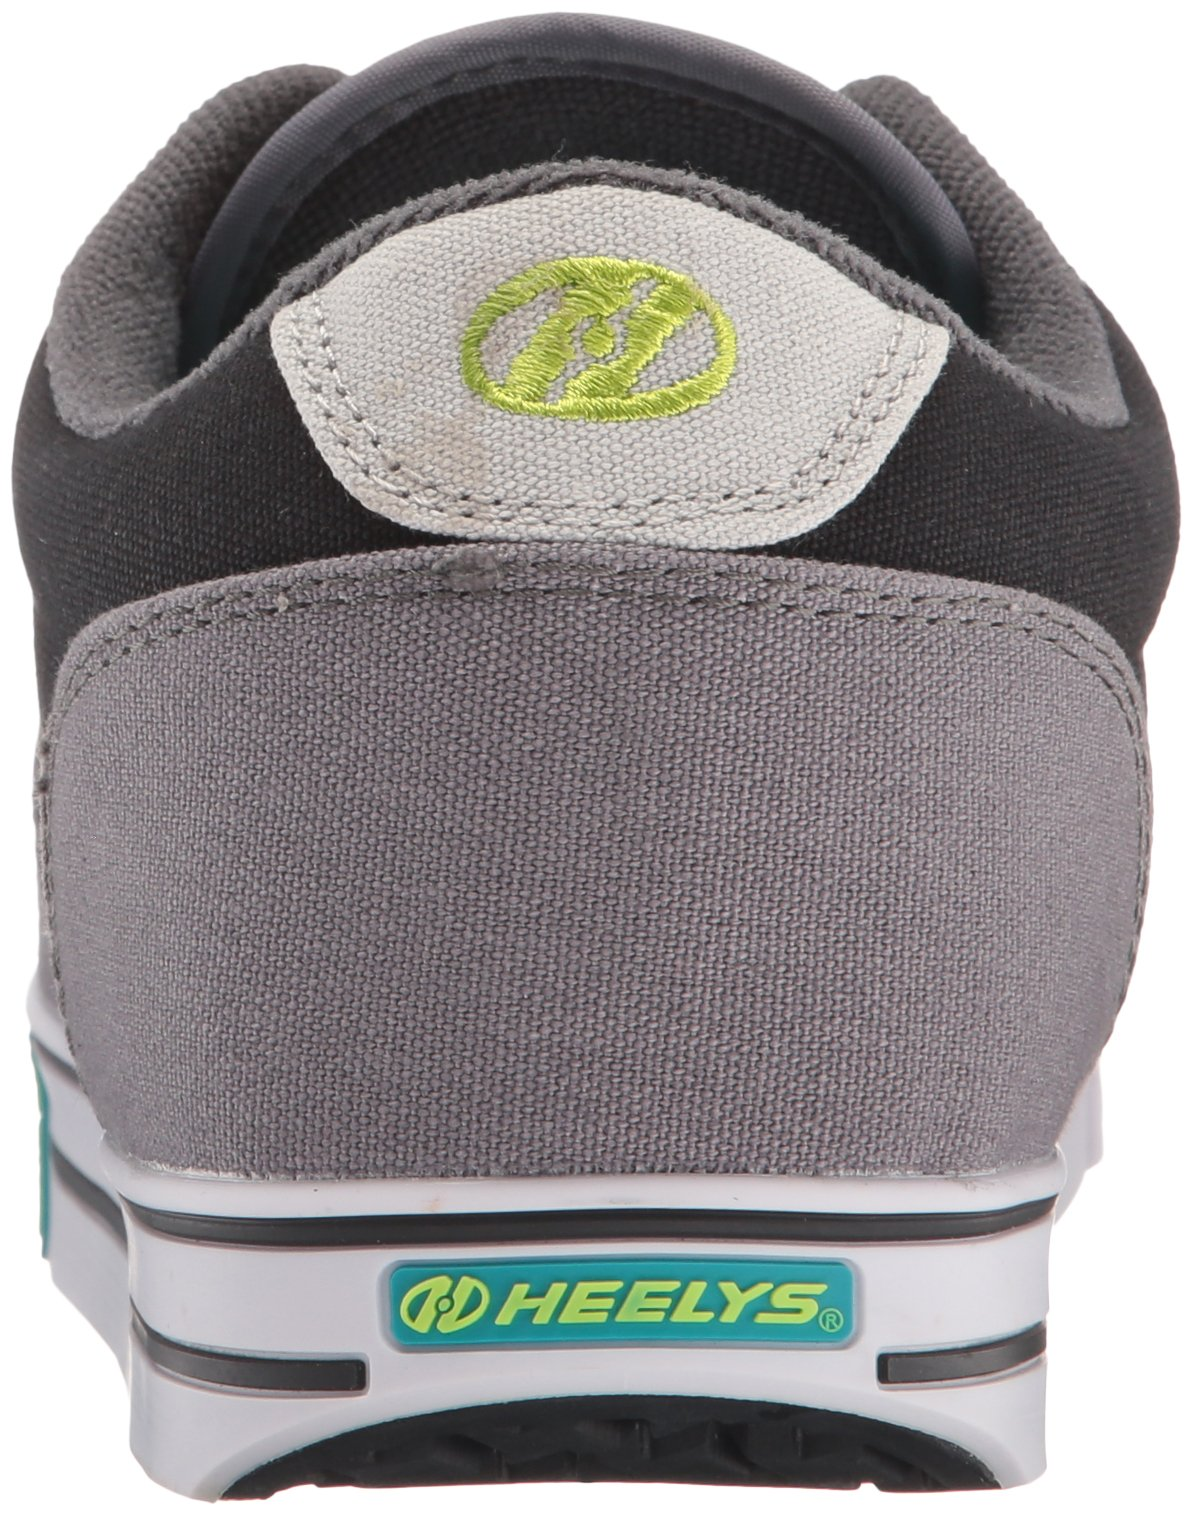 Heelys Men's Launch Fashion Sneaker Charcoal/Black/Lime 10 M US by Heelys (Image #2)